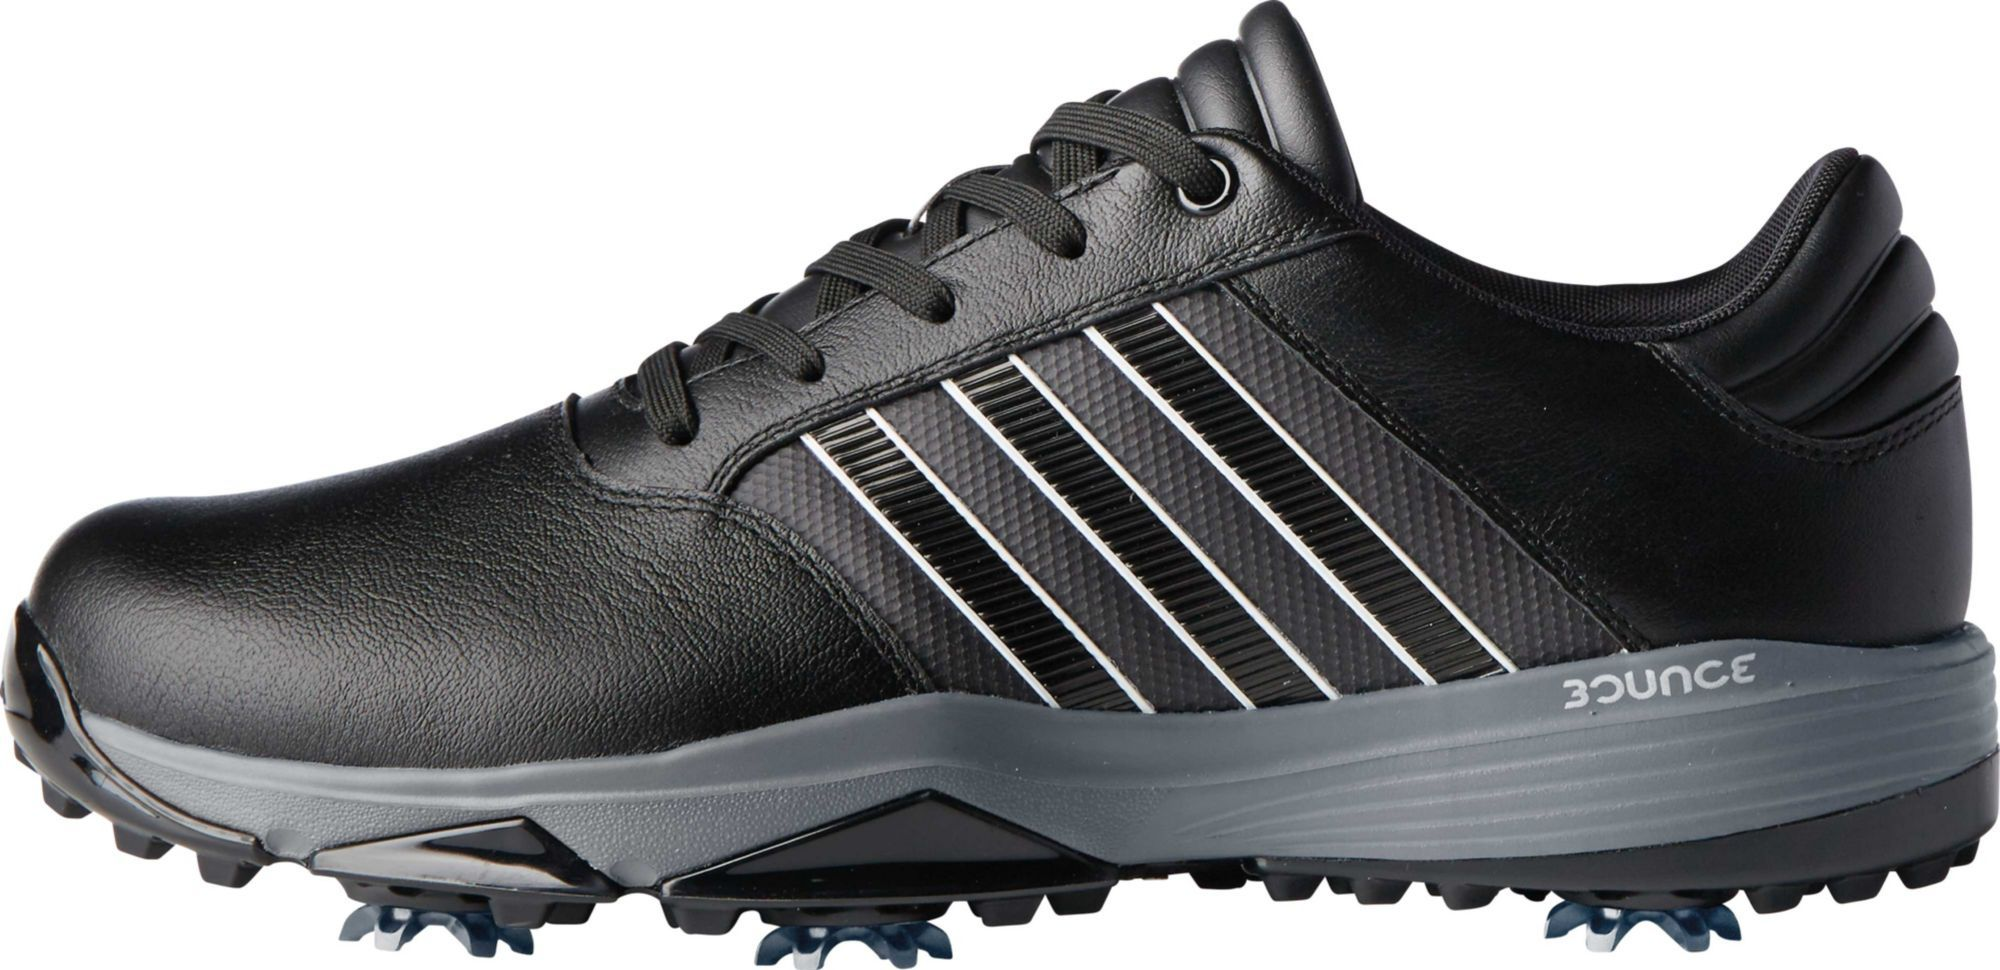 adidas 360 Bounce Golf Shoes, Black Golf shoes, Womens